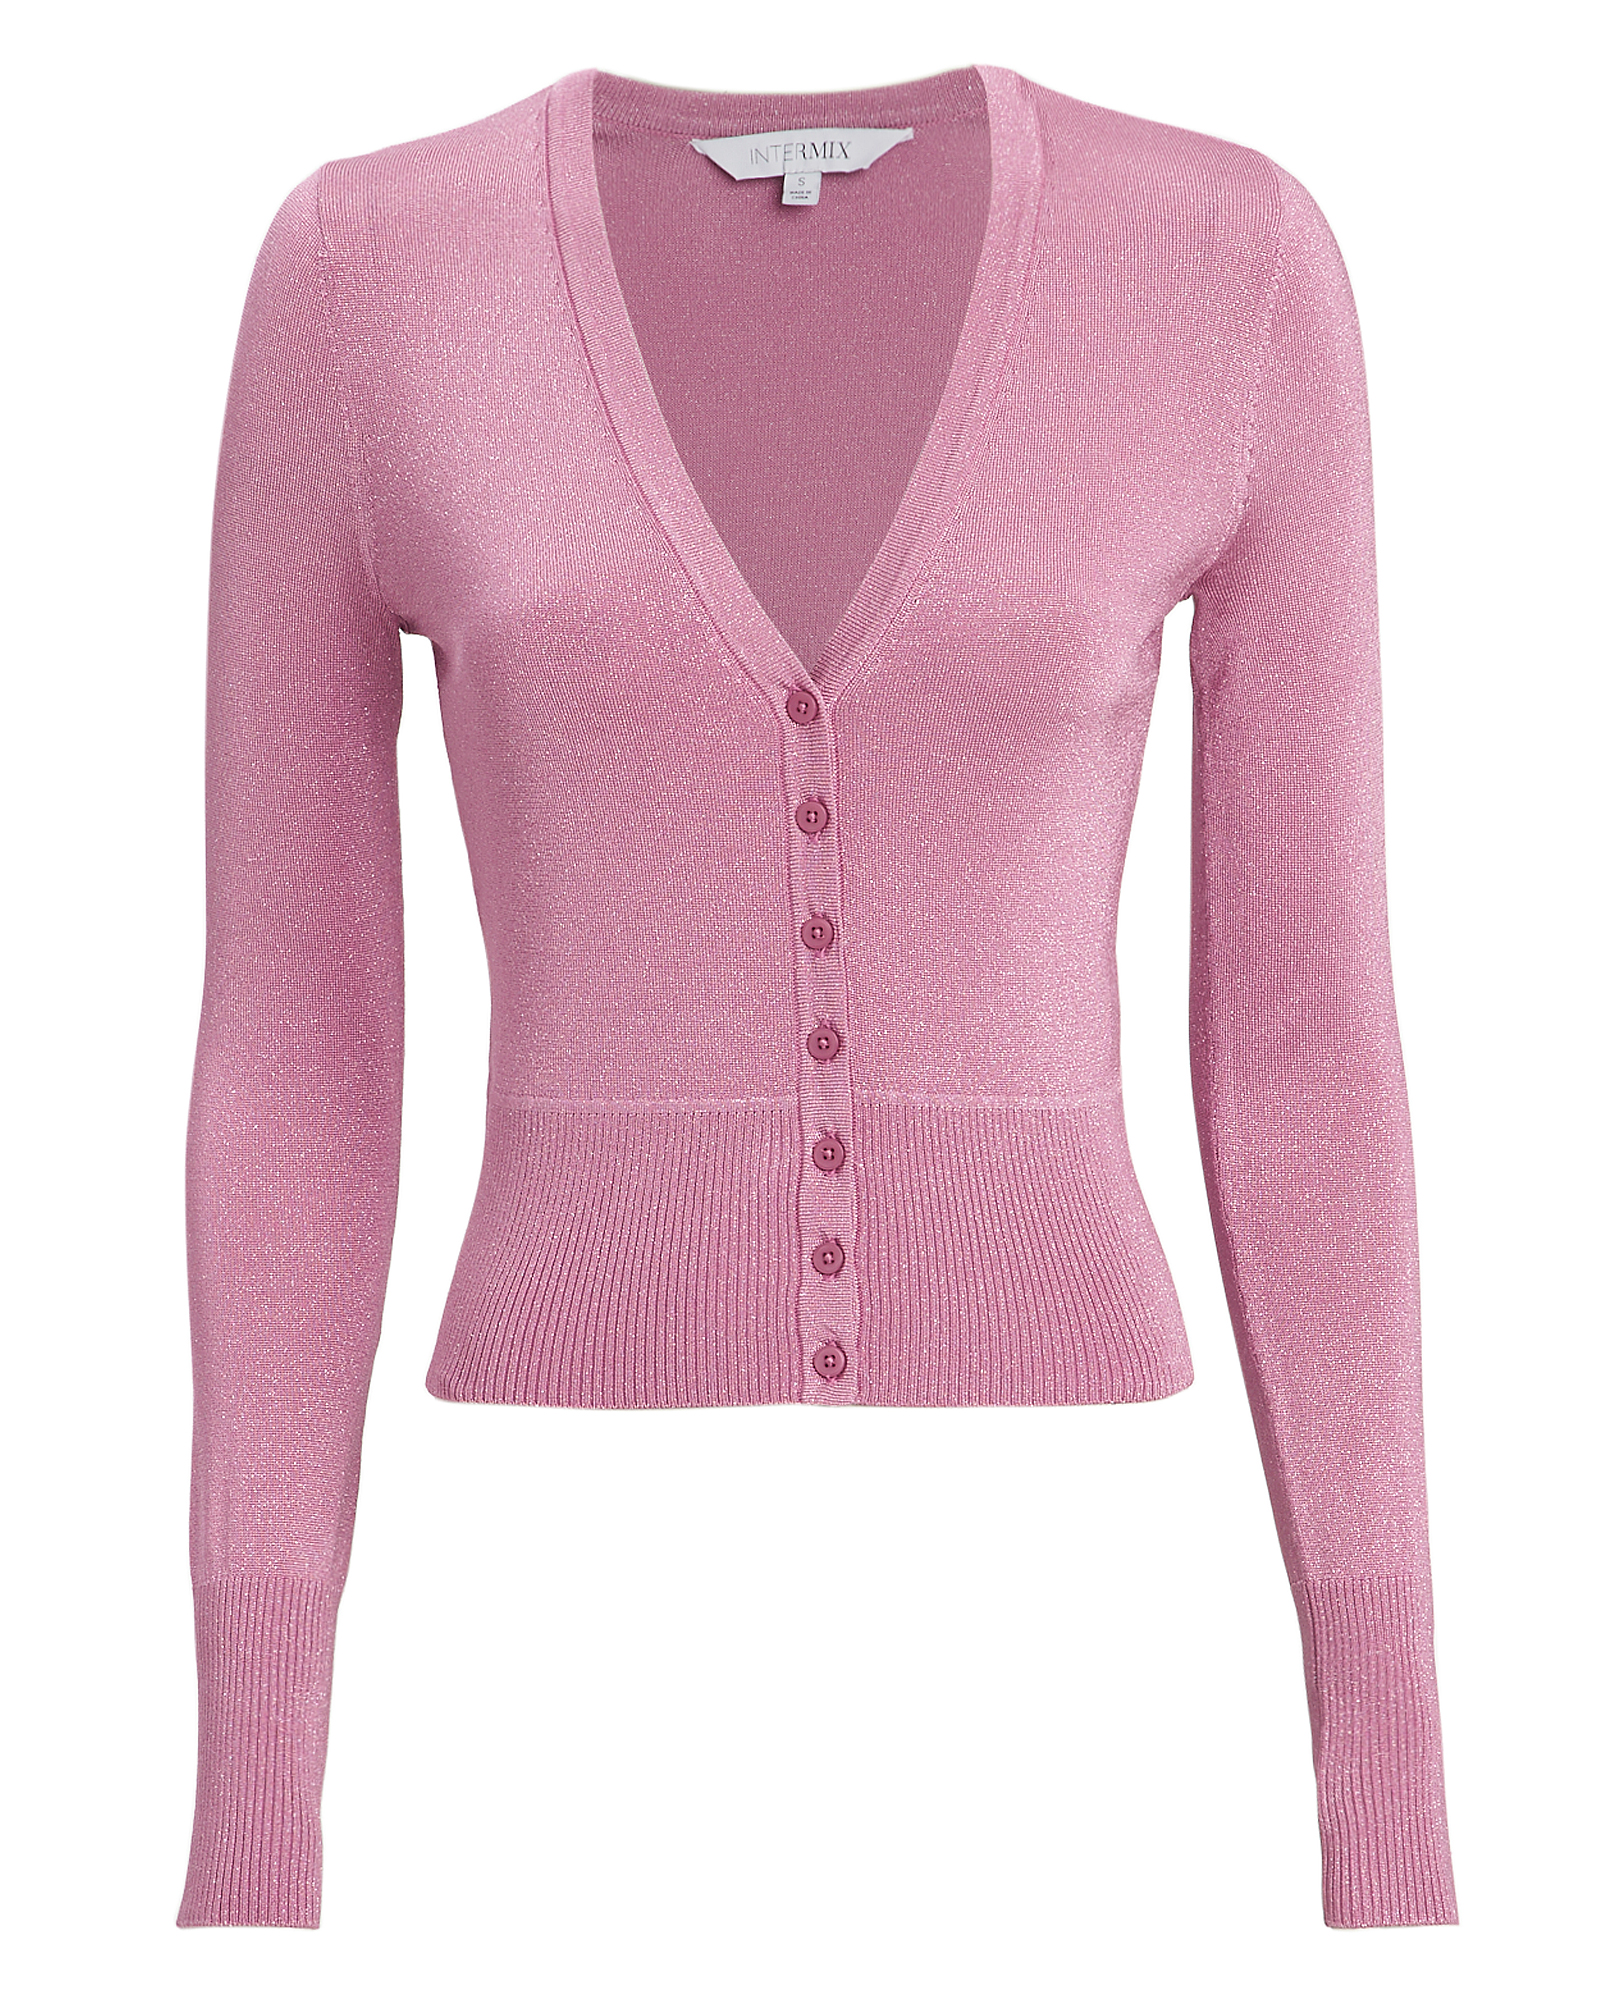 EXCLUSIVE FOR INTERMIX Celestine Pink Lurex Cardigan